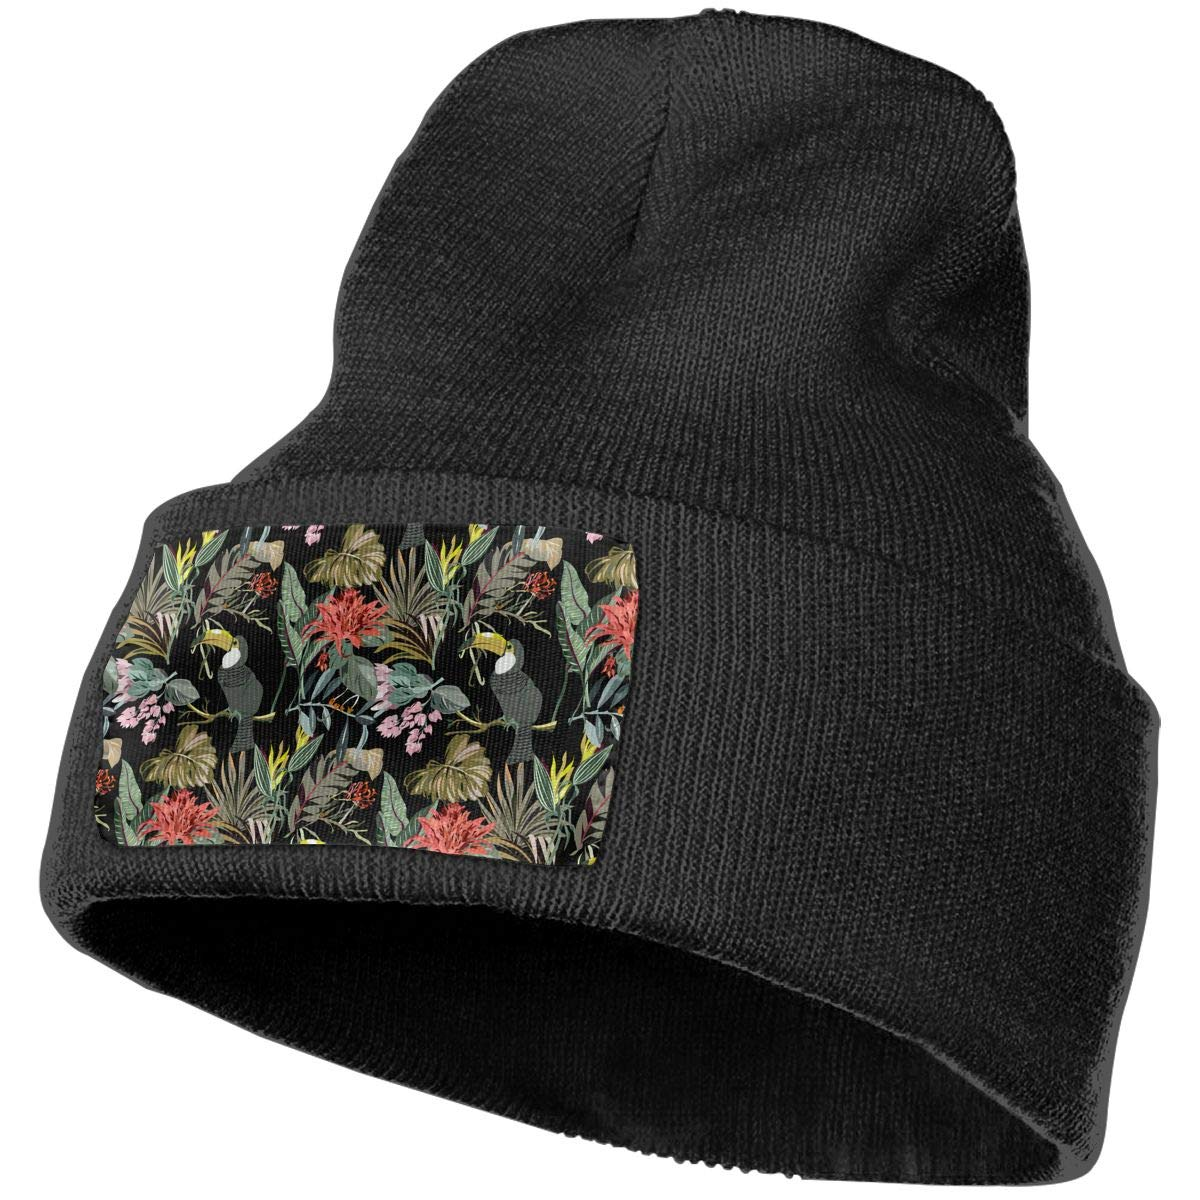 Exotic Hawaii Background with Flowers and Birds Unisex Fashion Knitted Hat Luxury Hip-Hop Cap